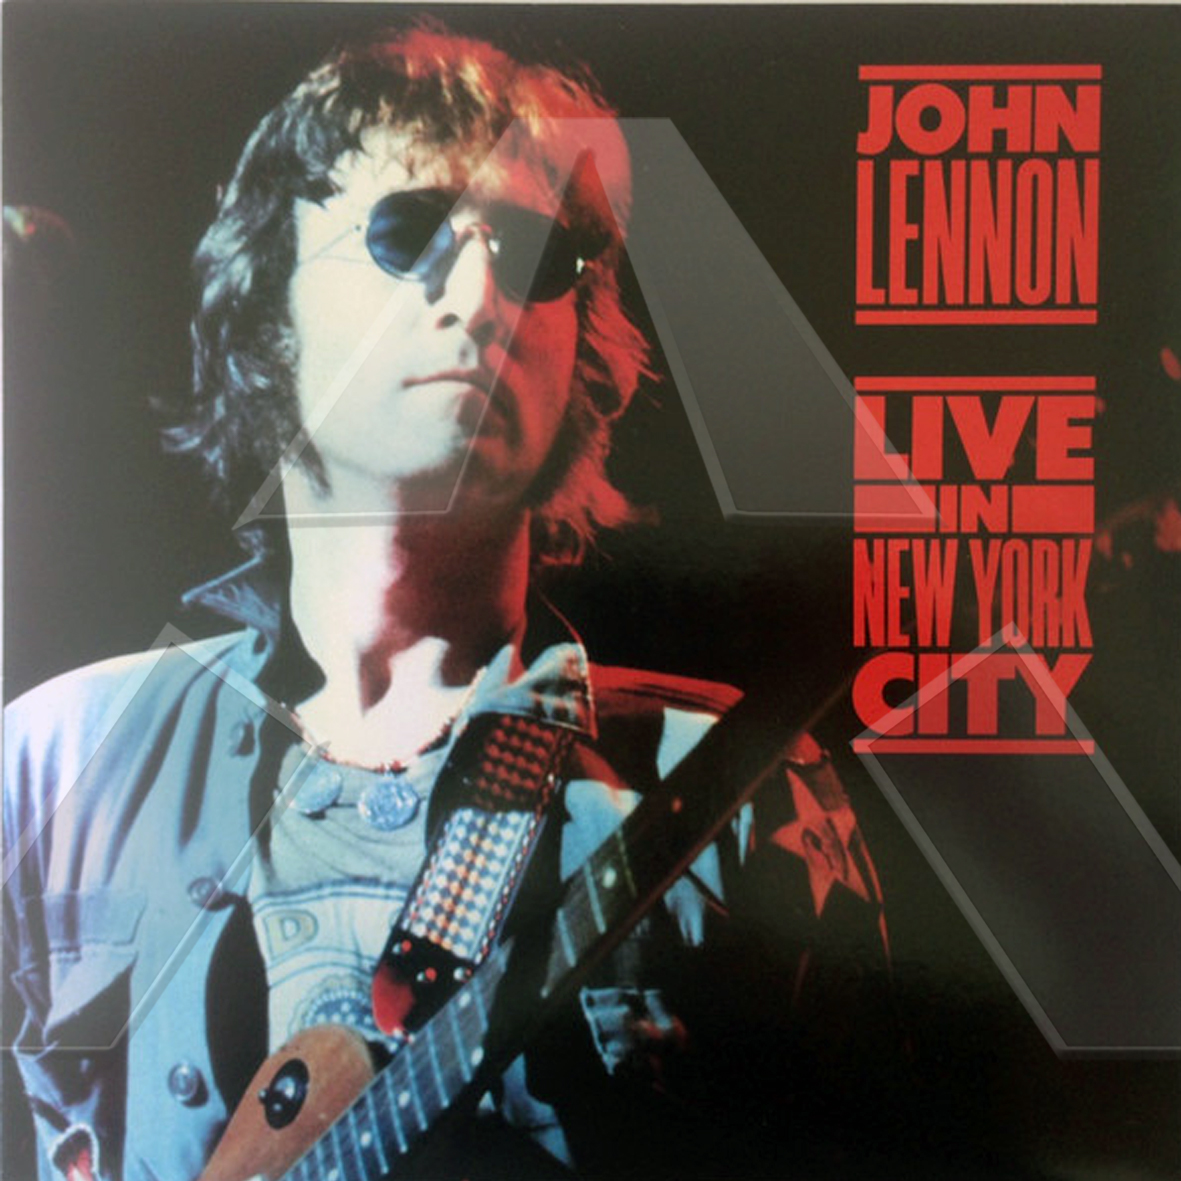 John Lennon ★ Live in New York City (vinyl album EU)